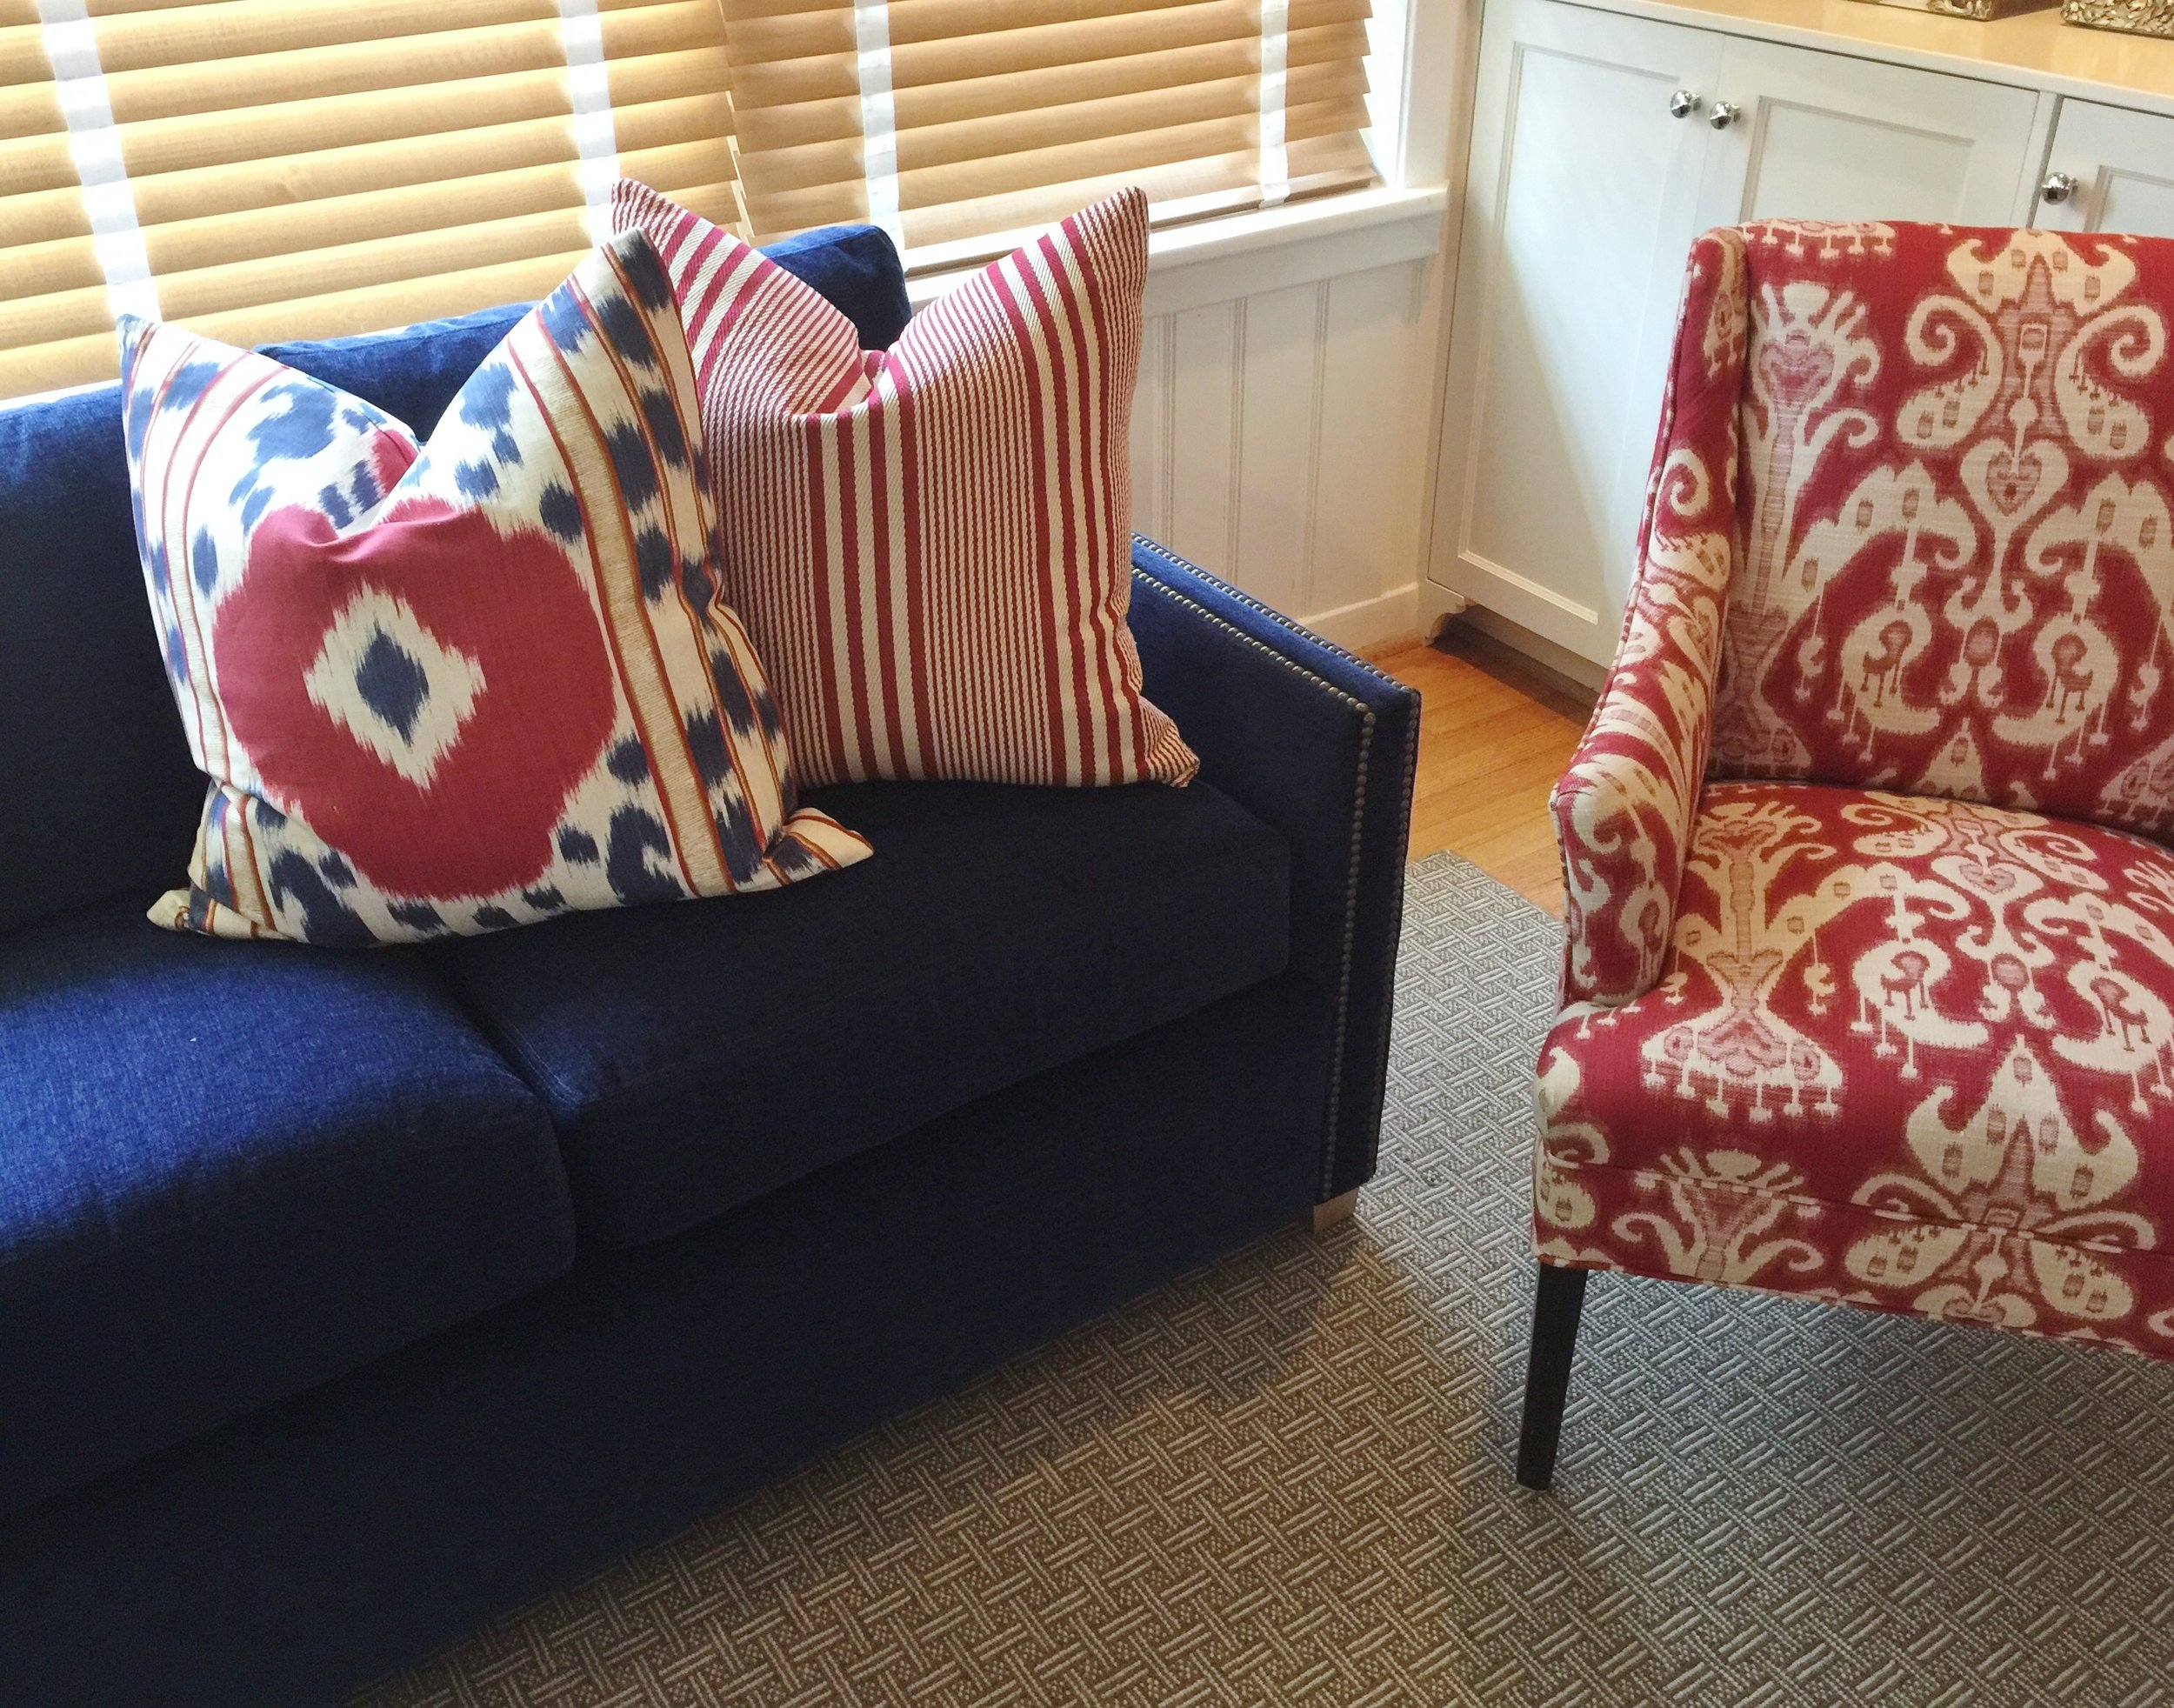 Blue sectional sofa with red, white, and blue pillows